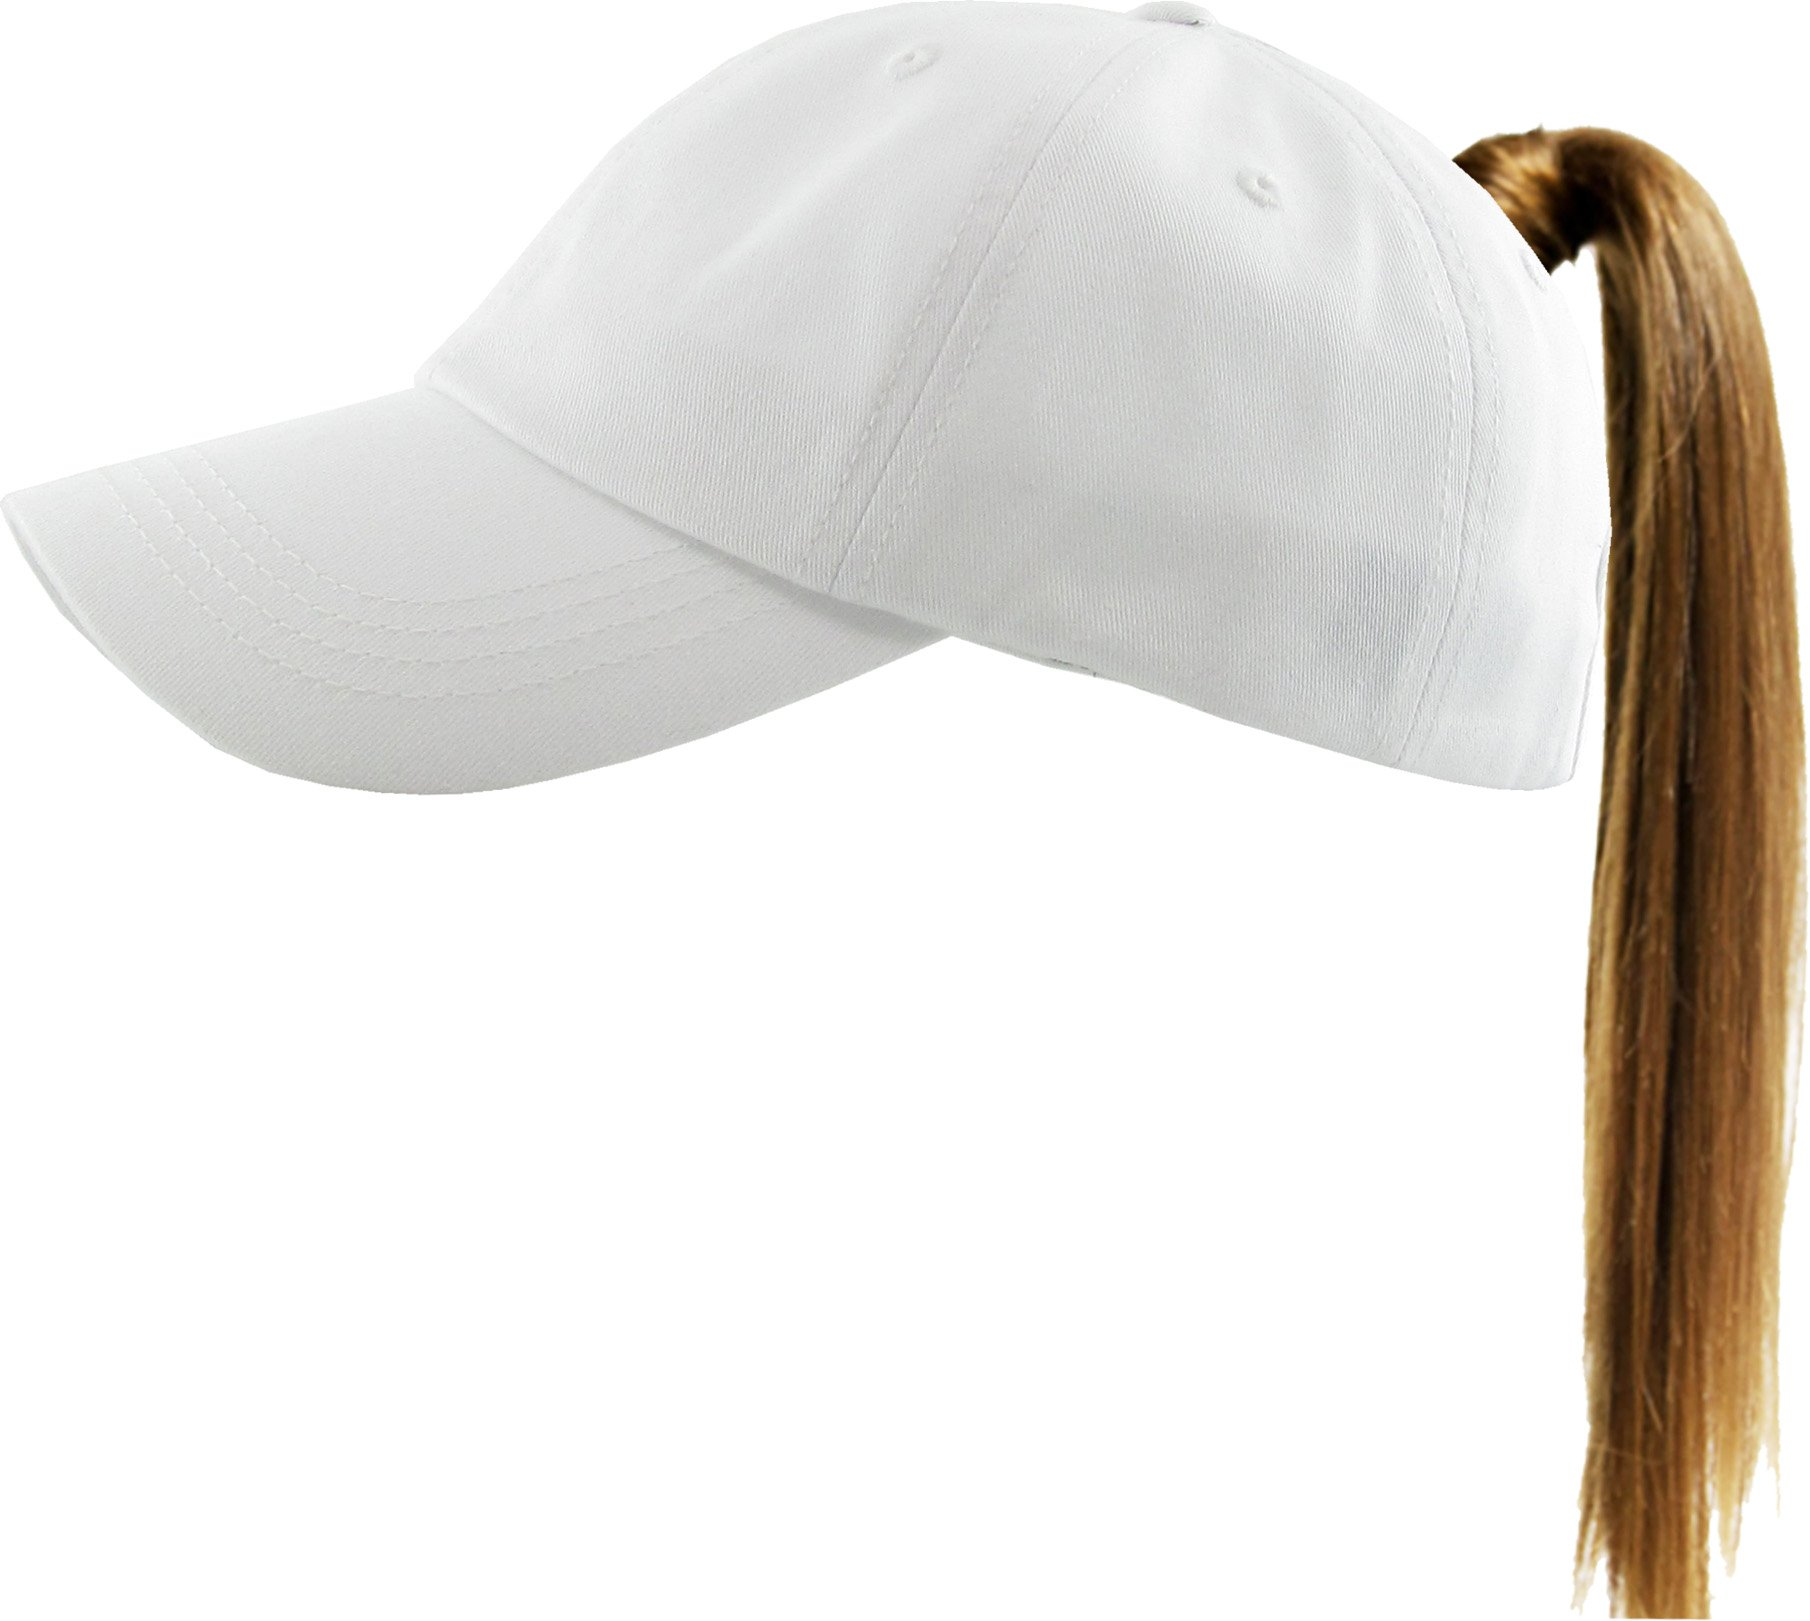 KBETHOS Ponytail Messy High Bun Hat Ponycaps Adjustable Cotton and Mesh Trucker Baseball Cap (Adjustable, Classic White)